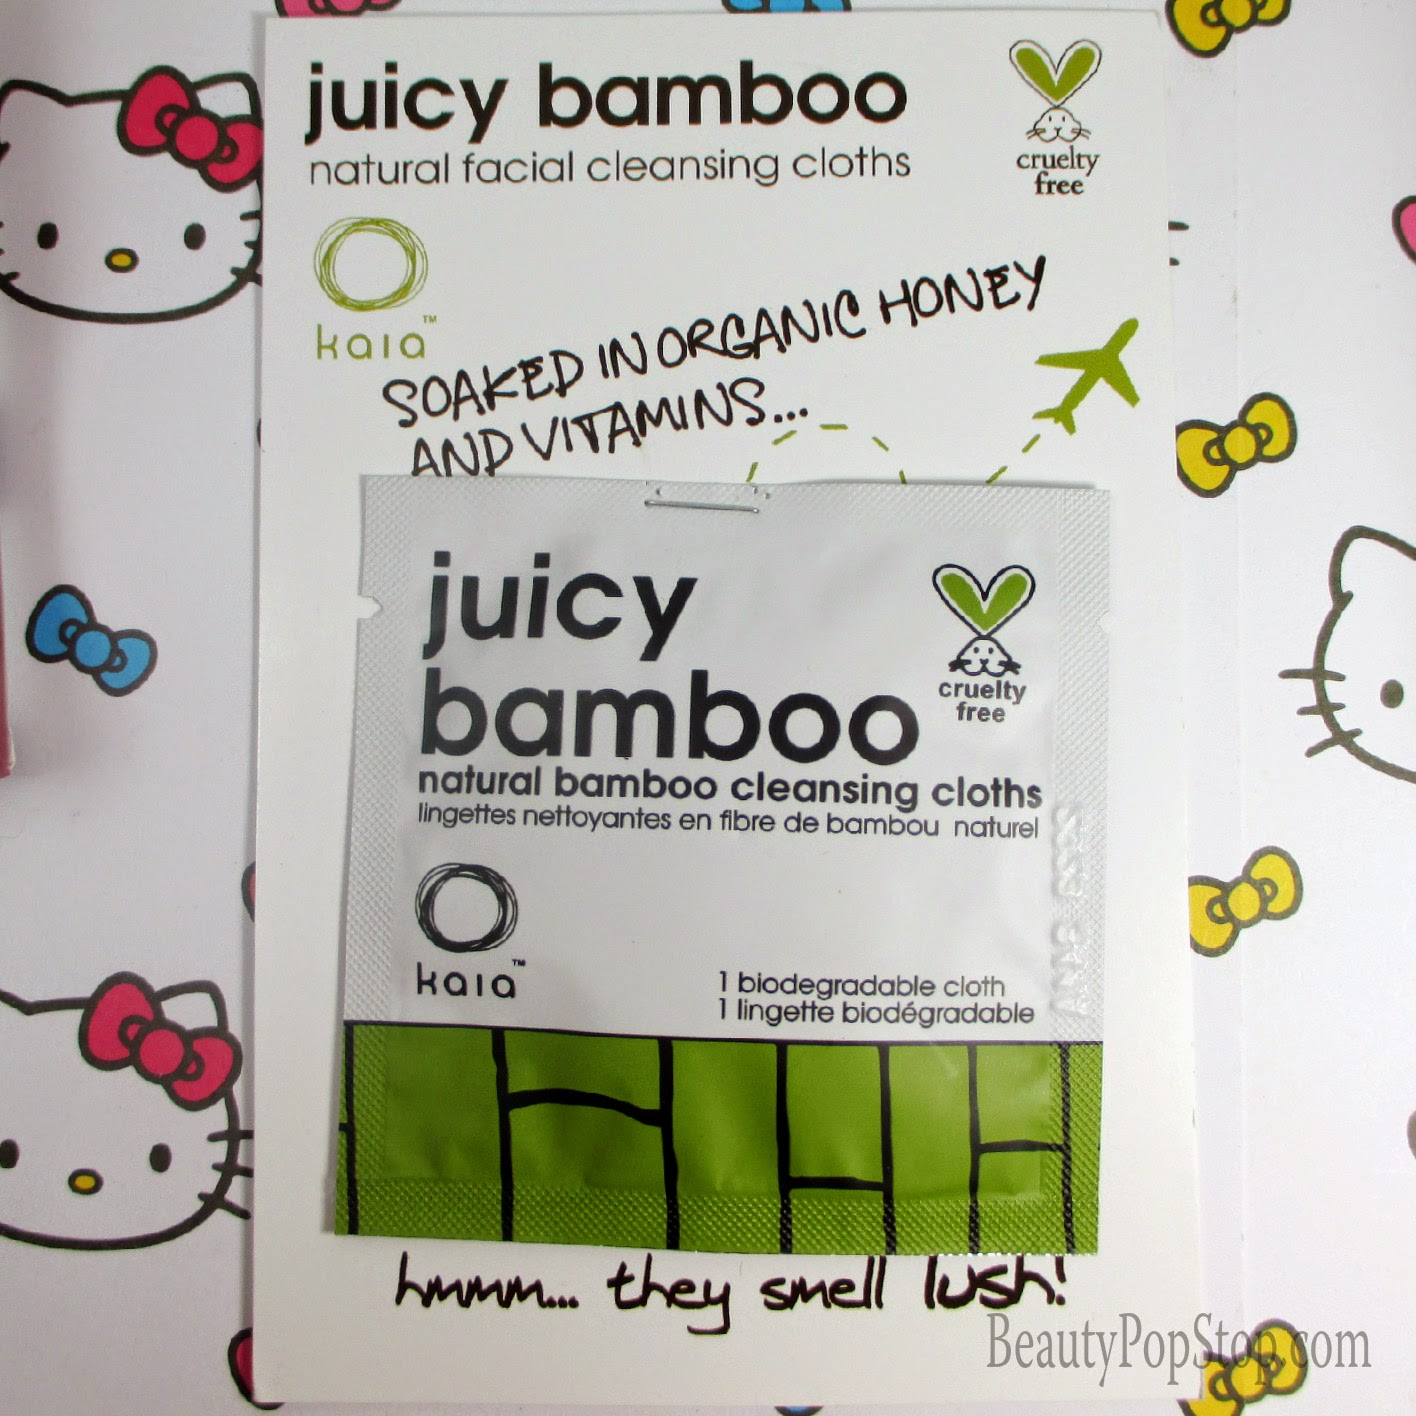 kaia naturals juicy bamboo face cleansing cloths review